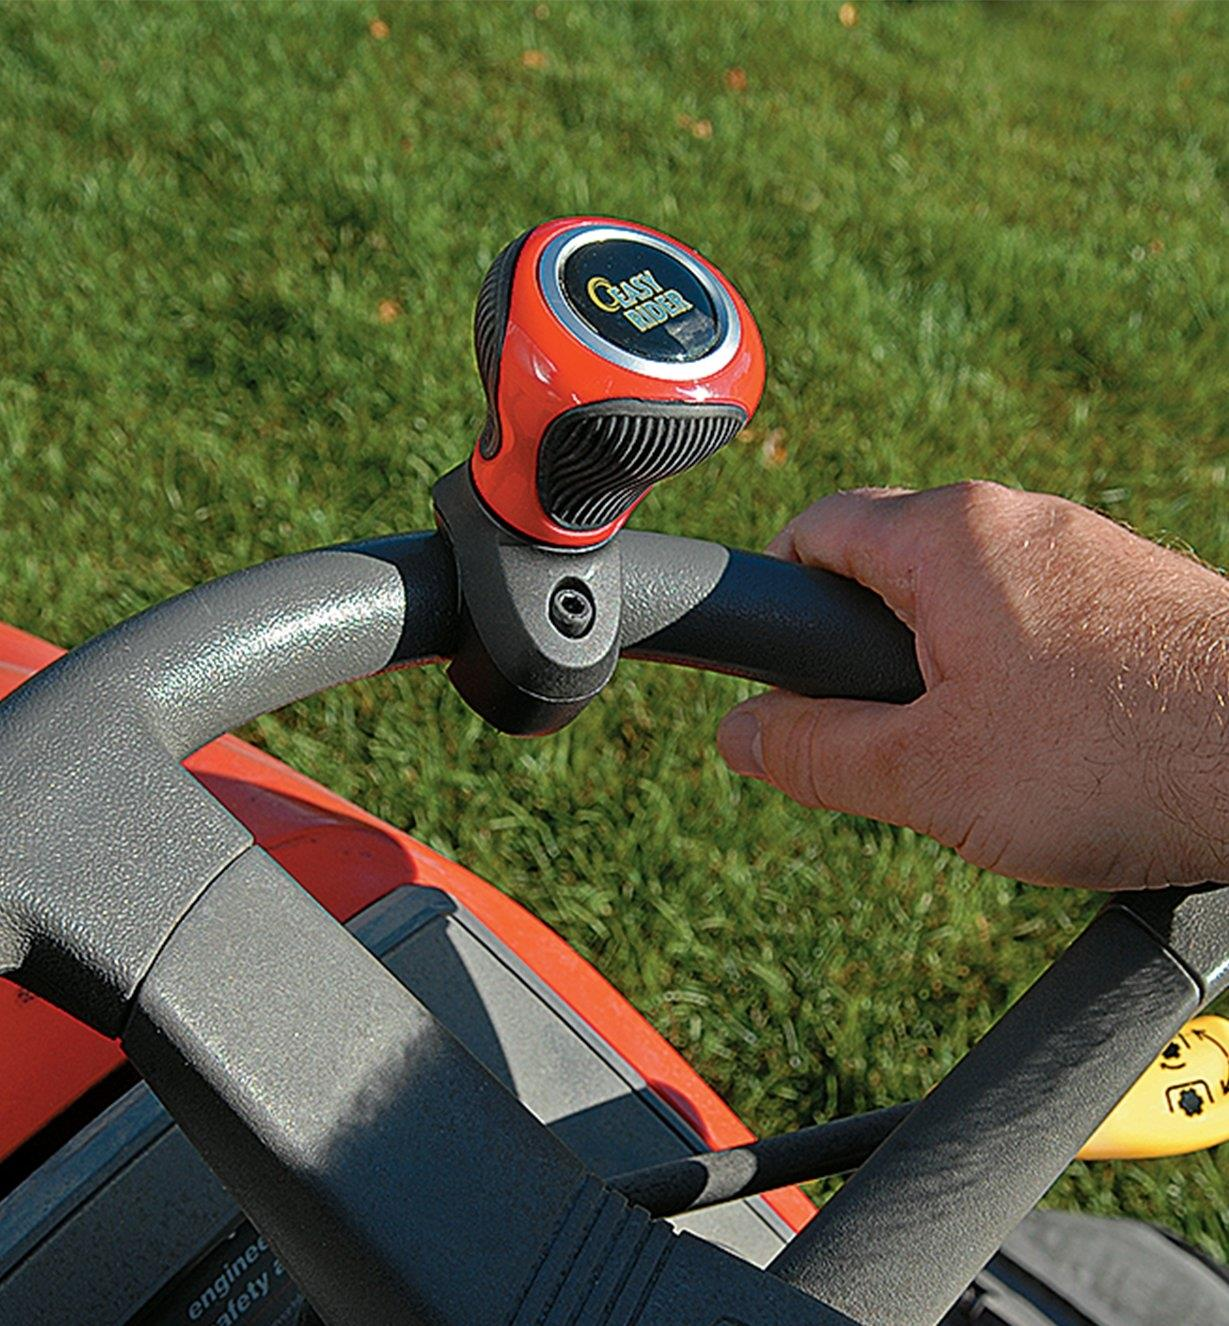 Knob mounted to a riding mower steering wheel